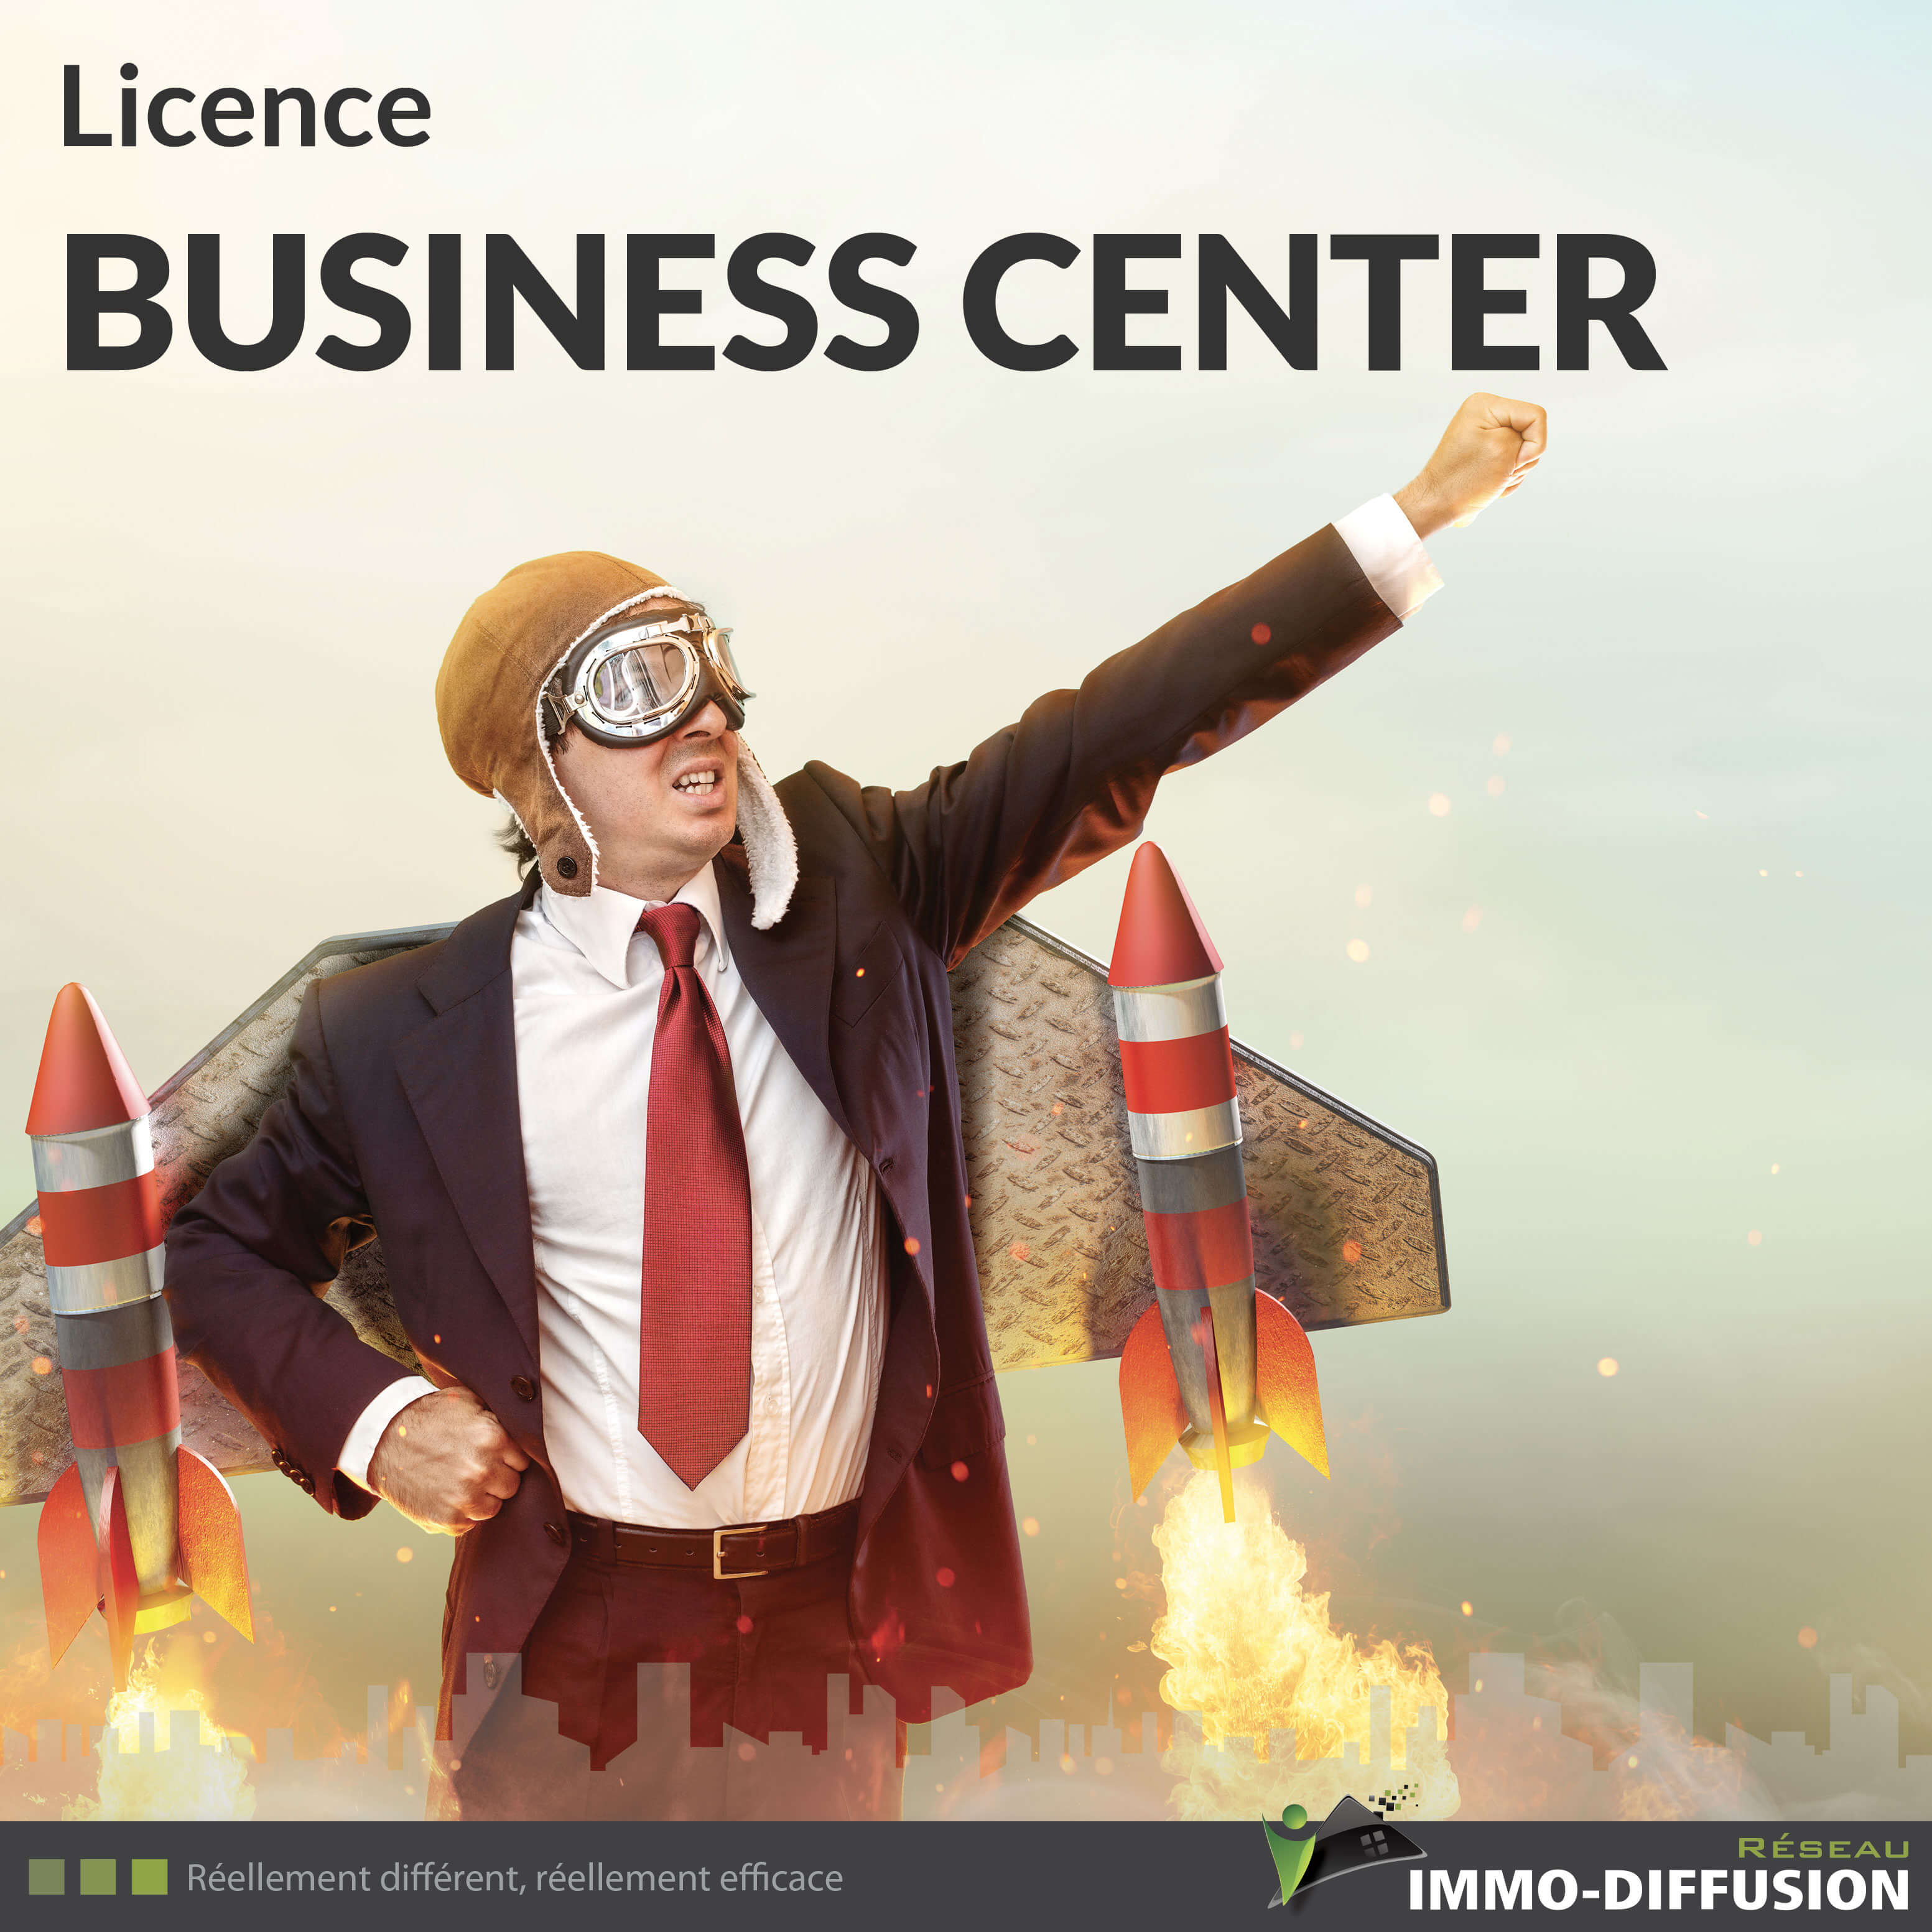 Licence BUSINESS CENTER